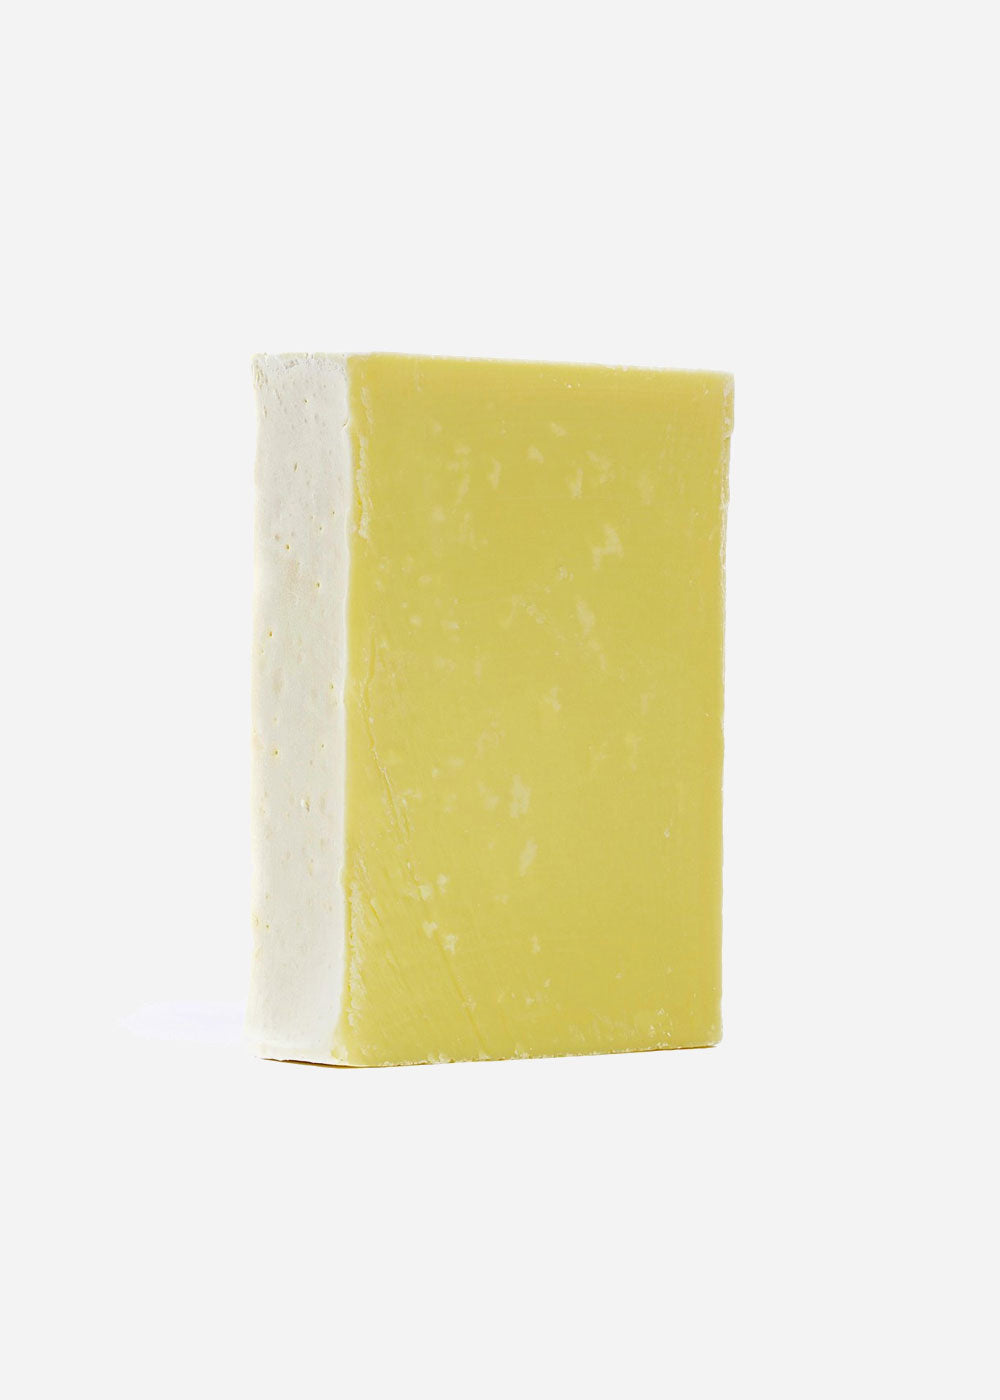 Yummy Me Olive Oil Brine Soap — Shop sustainable fashion and slow fashion at New Classics Studios